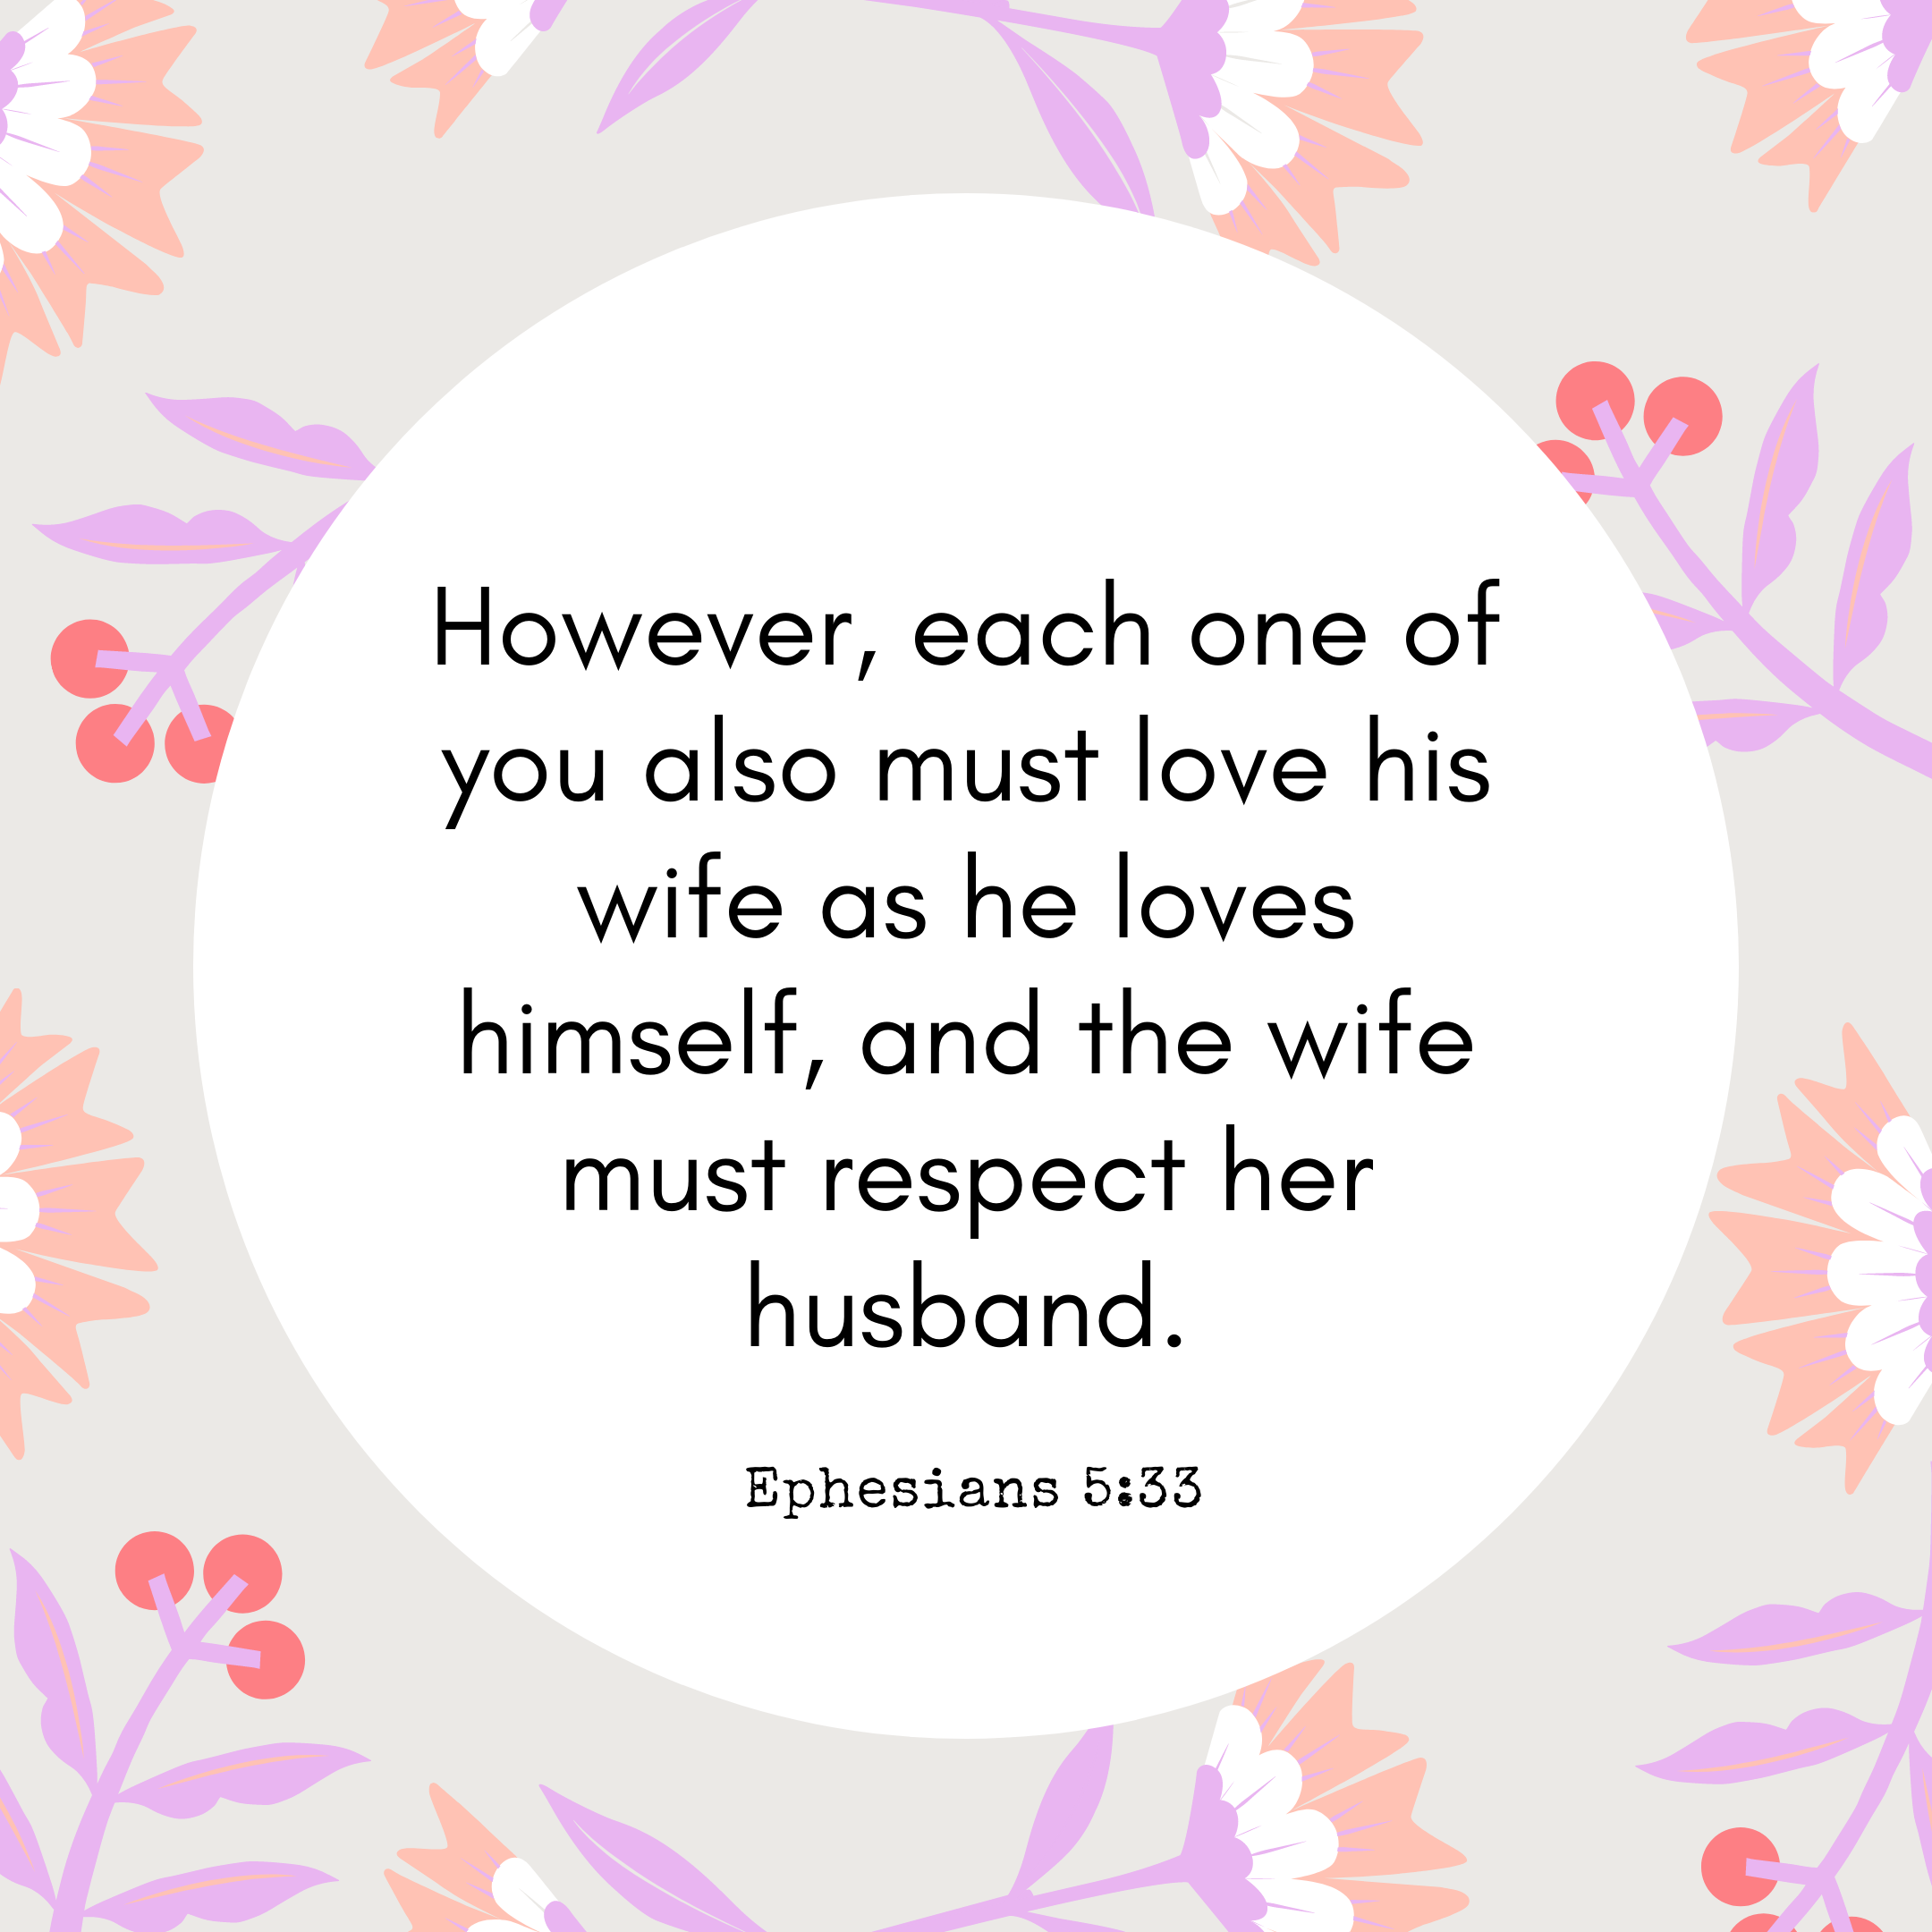 Ephesians 5:33 However, each one of you also must love his wife as he loves himself, and the wife must respect her husband.